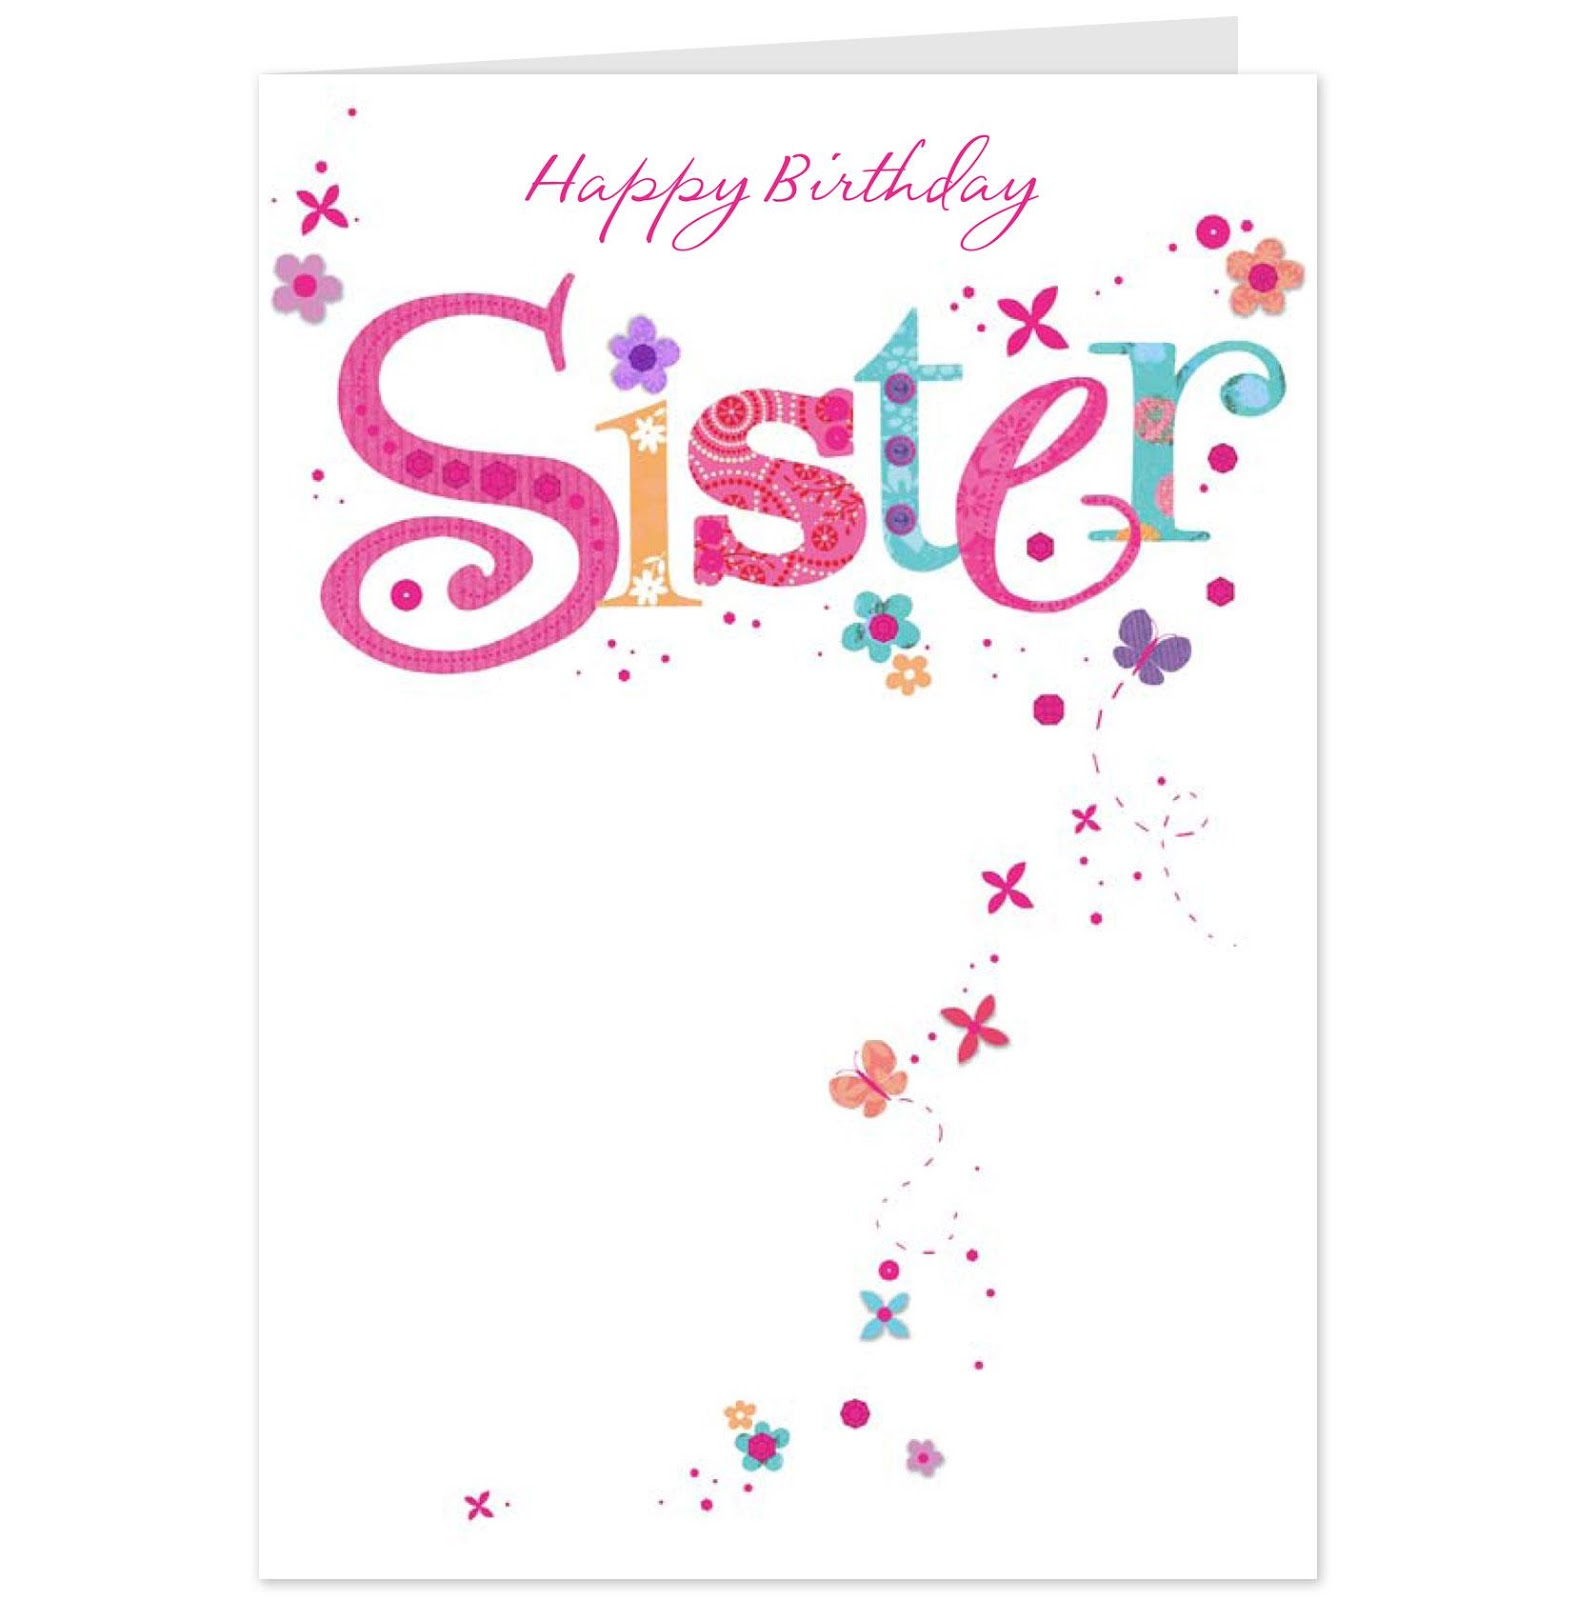 ImagesList.com: Happy Birthday Sister, part 4 Happy Birth Day Images For Sister